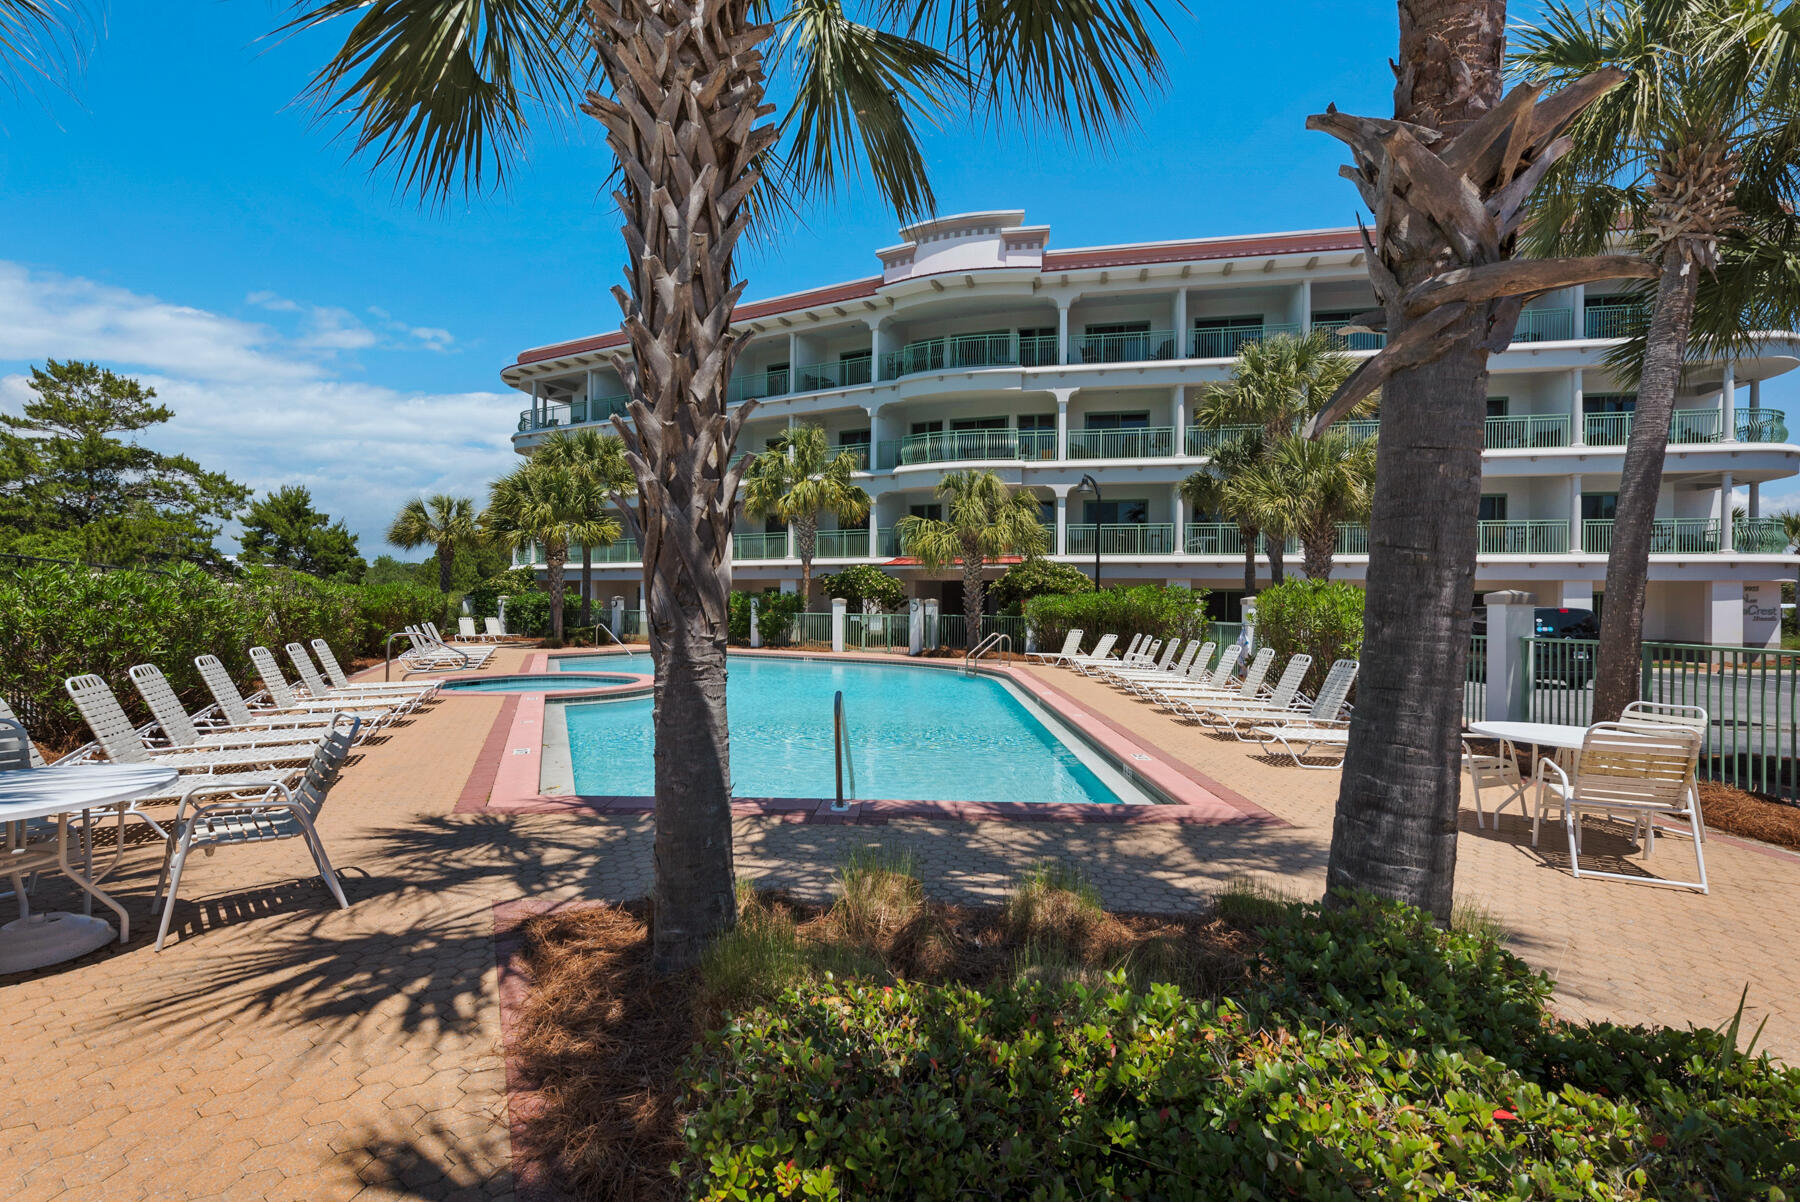 One of the best priced condos for sale along the entire stretch of 30A.Inn at Seacrest is ideally located between Alys and Rosemary Beach. Walking distance to  restaurants and shopping. Just steps away from the  beach with deeded beach access, with a seasonal tram for pick up and drop off at the beach.This ground floor walk out, studio unit w/full bath and efficiency kitchen with  Granite Countertops,White Cabinety , Stainless Steel Refigerator and Tile Flooring. Enjoy the community pool, hot tub and conveniently located  laundry.